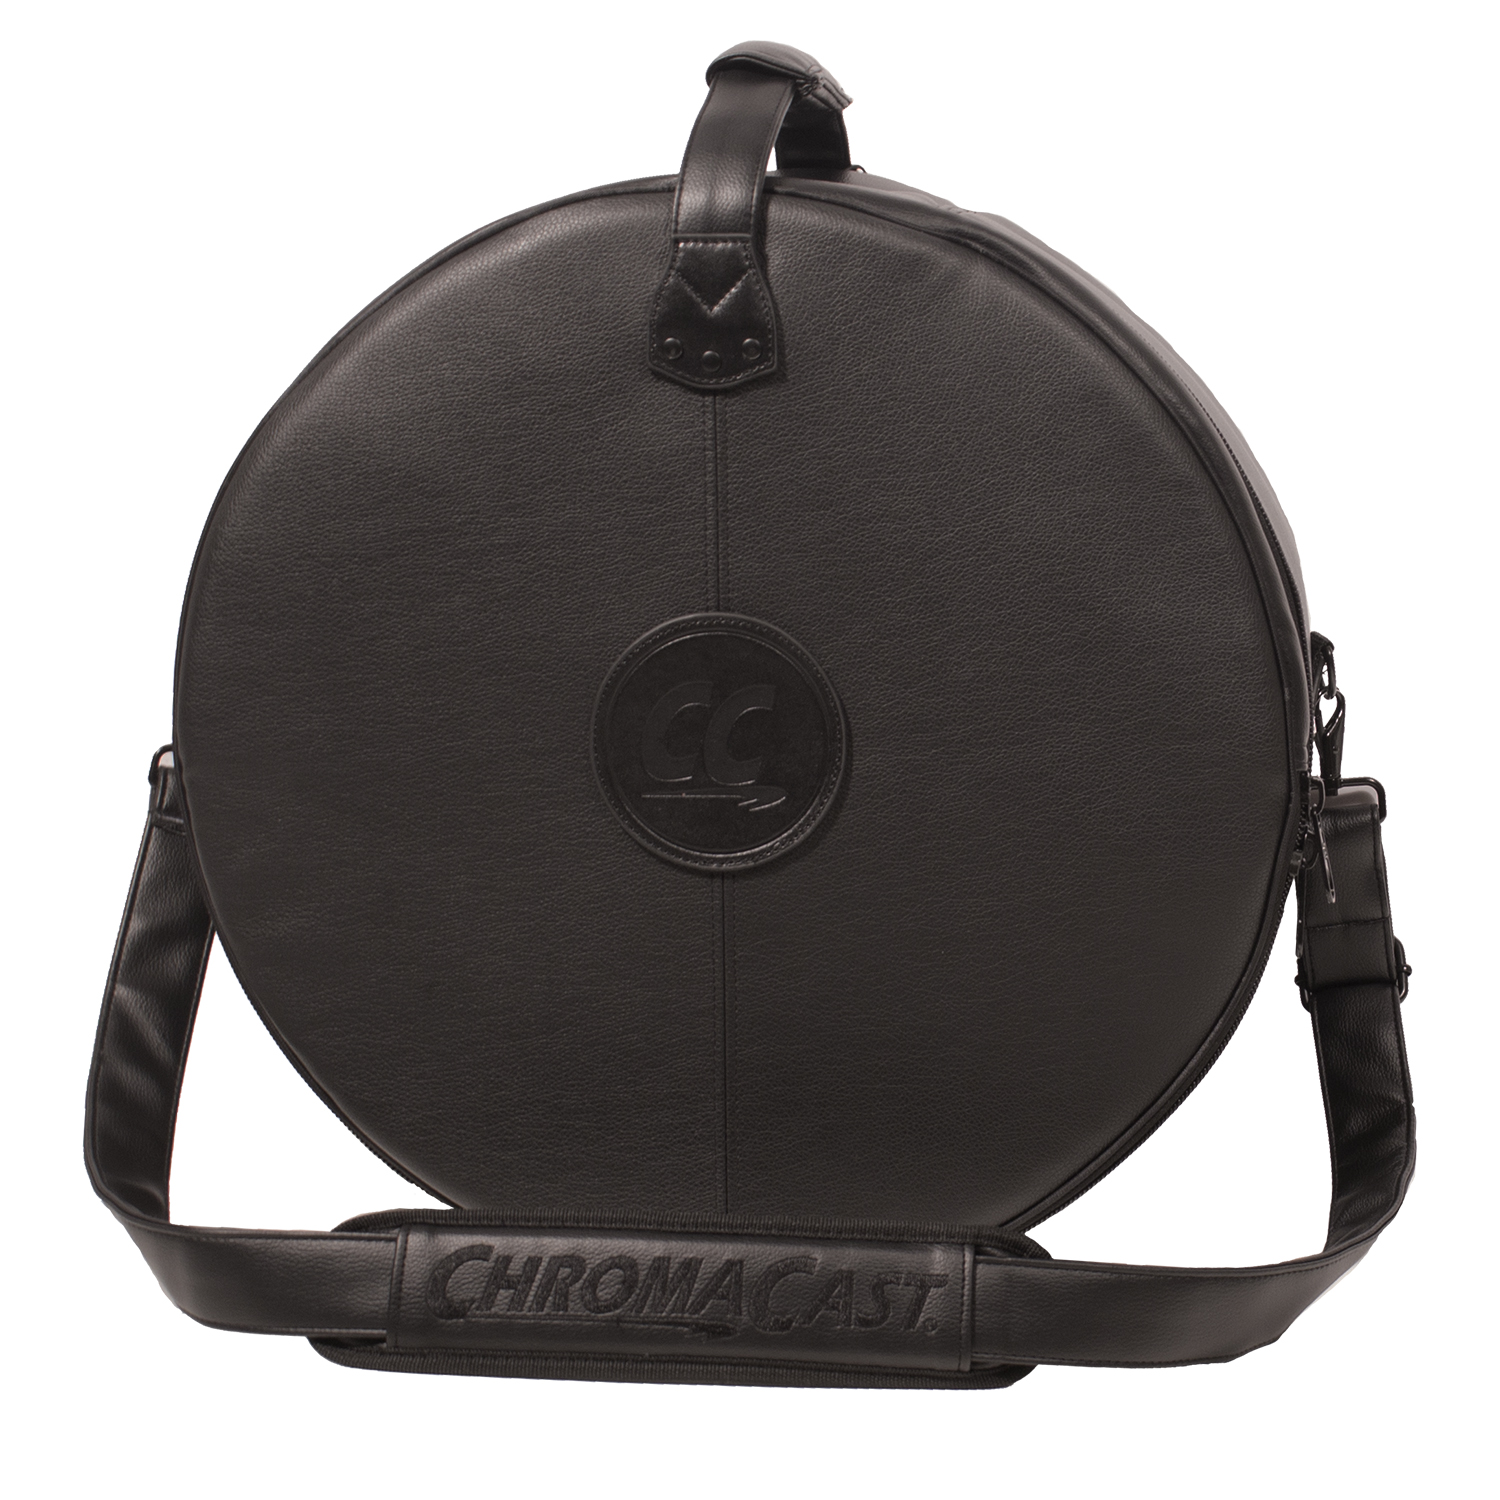 Pro Series Snare Drum Bag